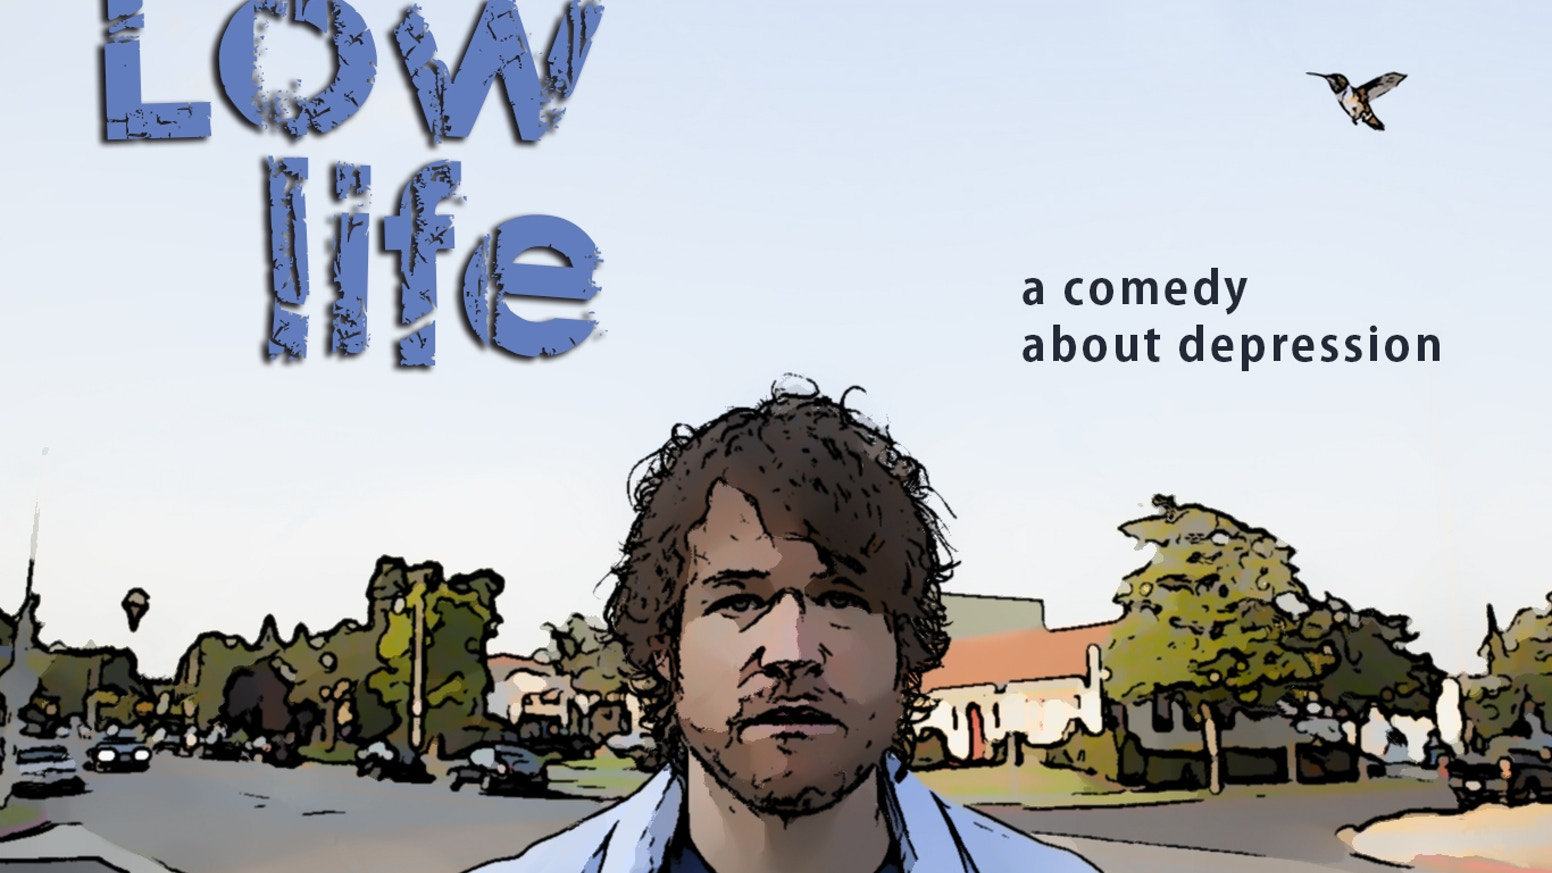 A comedy about depression.